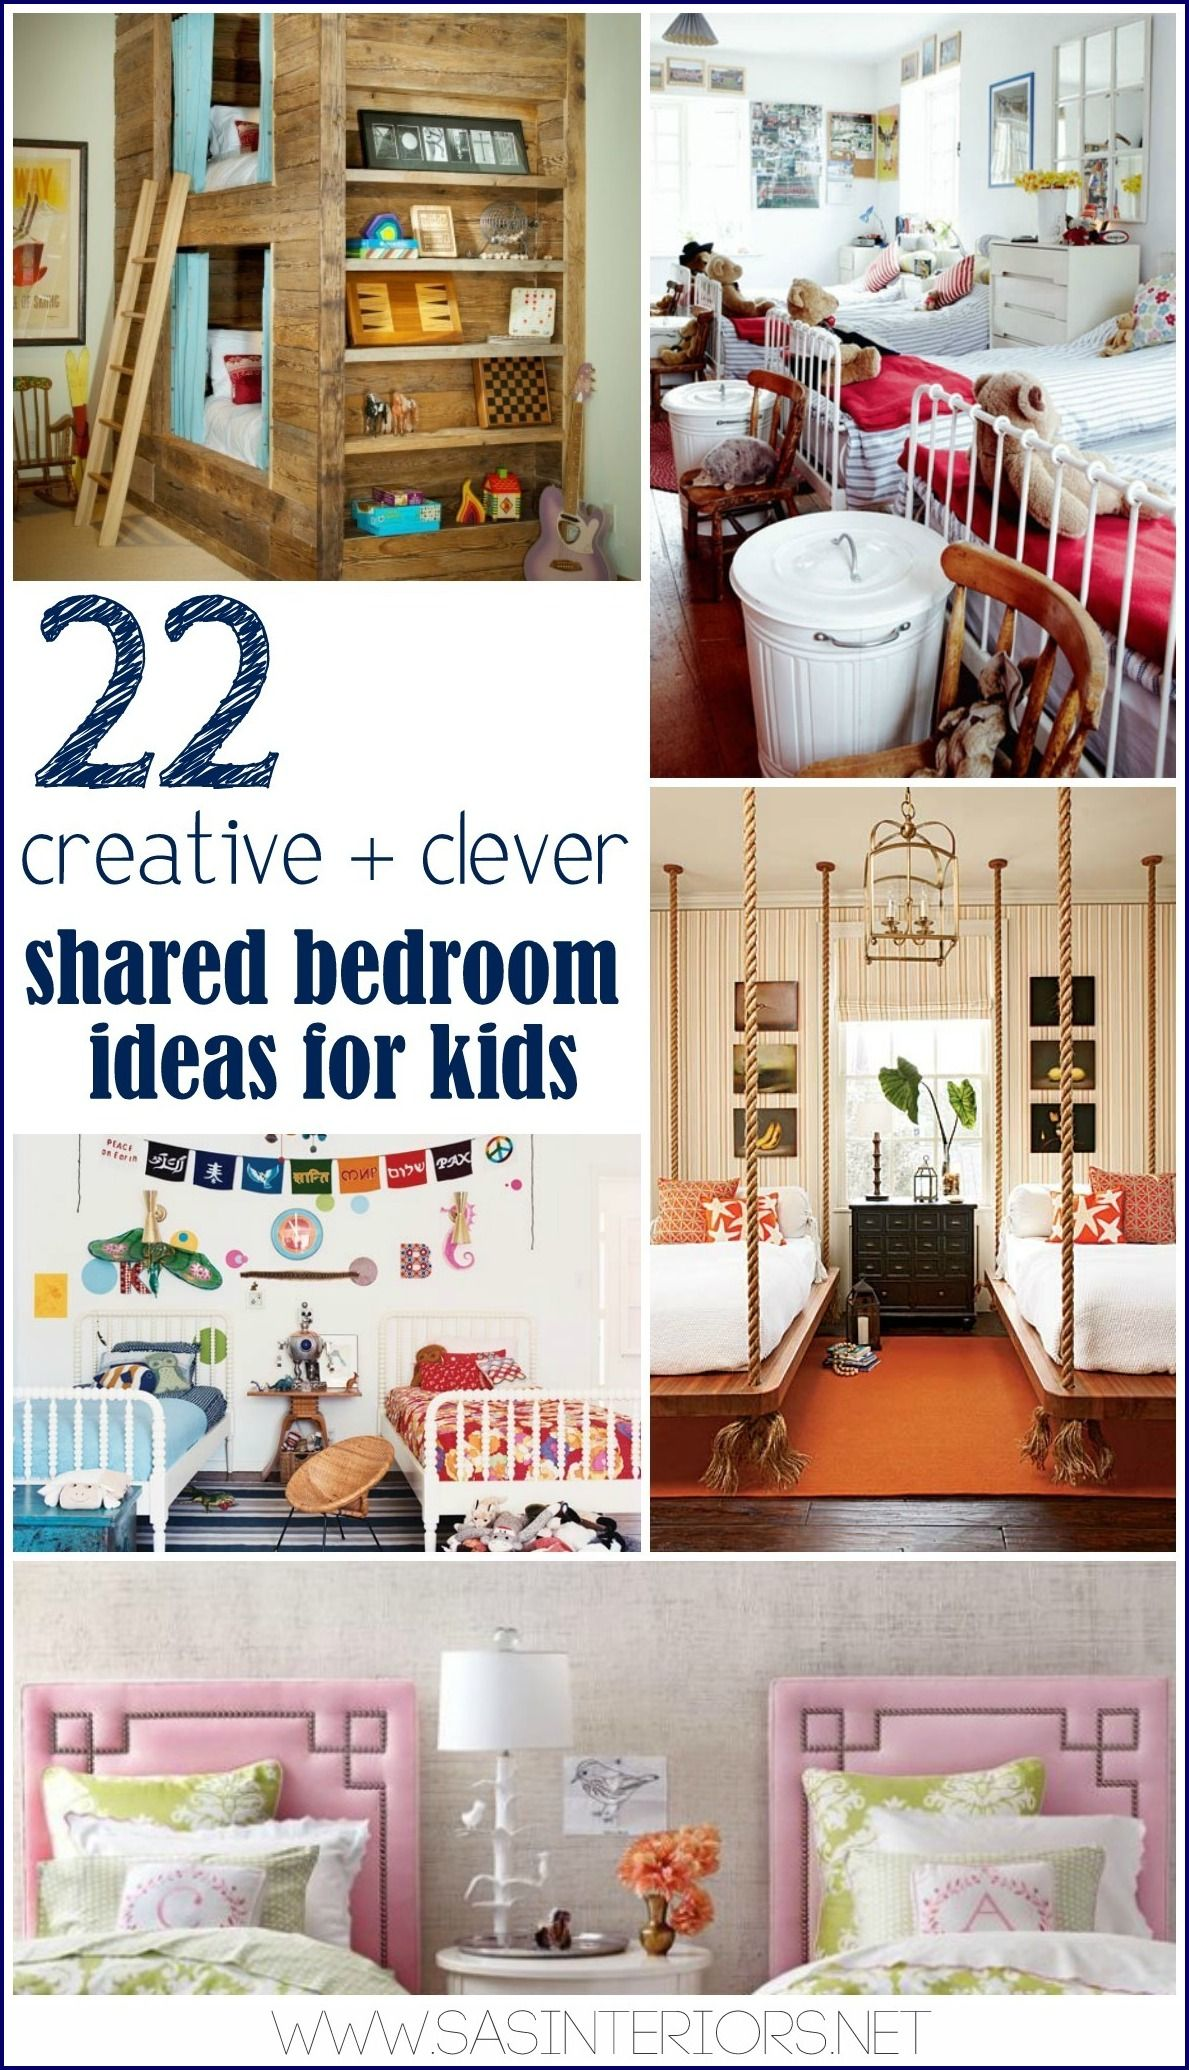 22 creative and clever shared bedroom ideas for kids by for Hamburger kinderzimmer